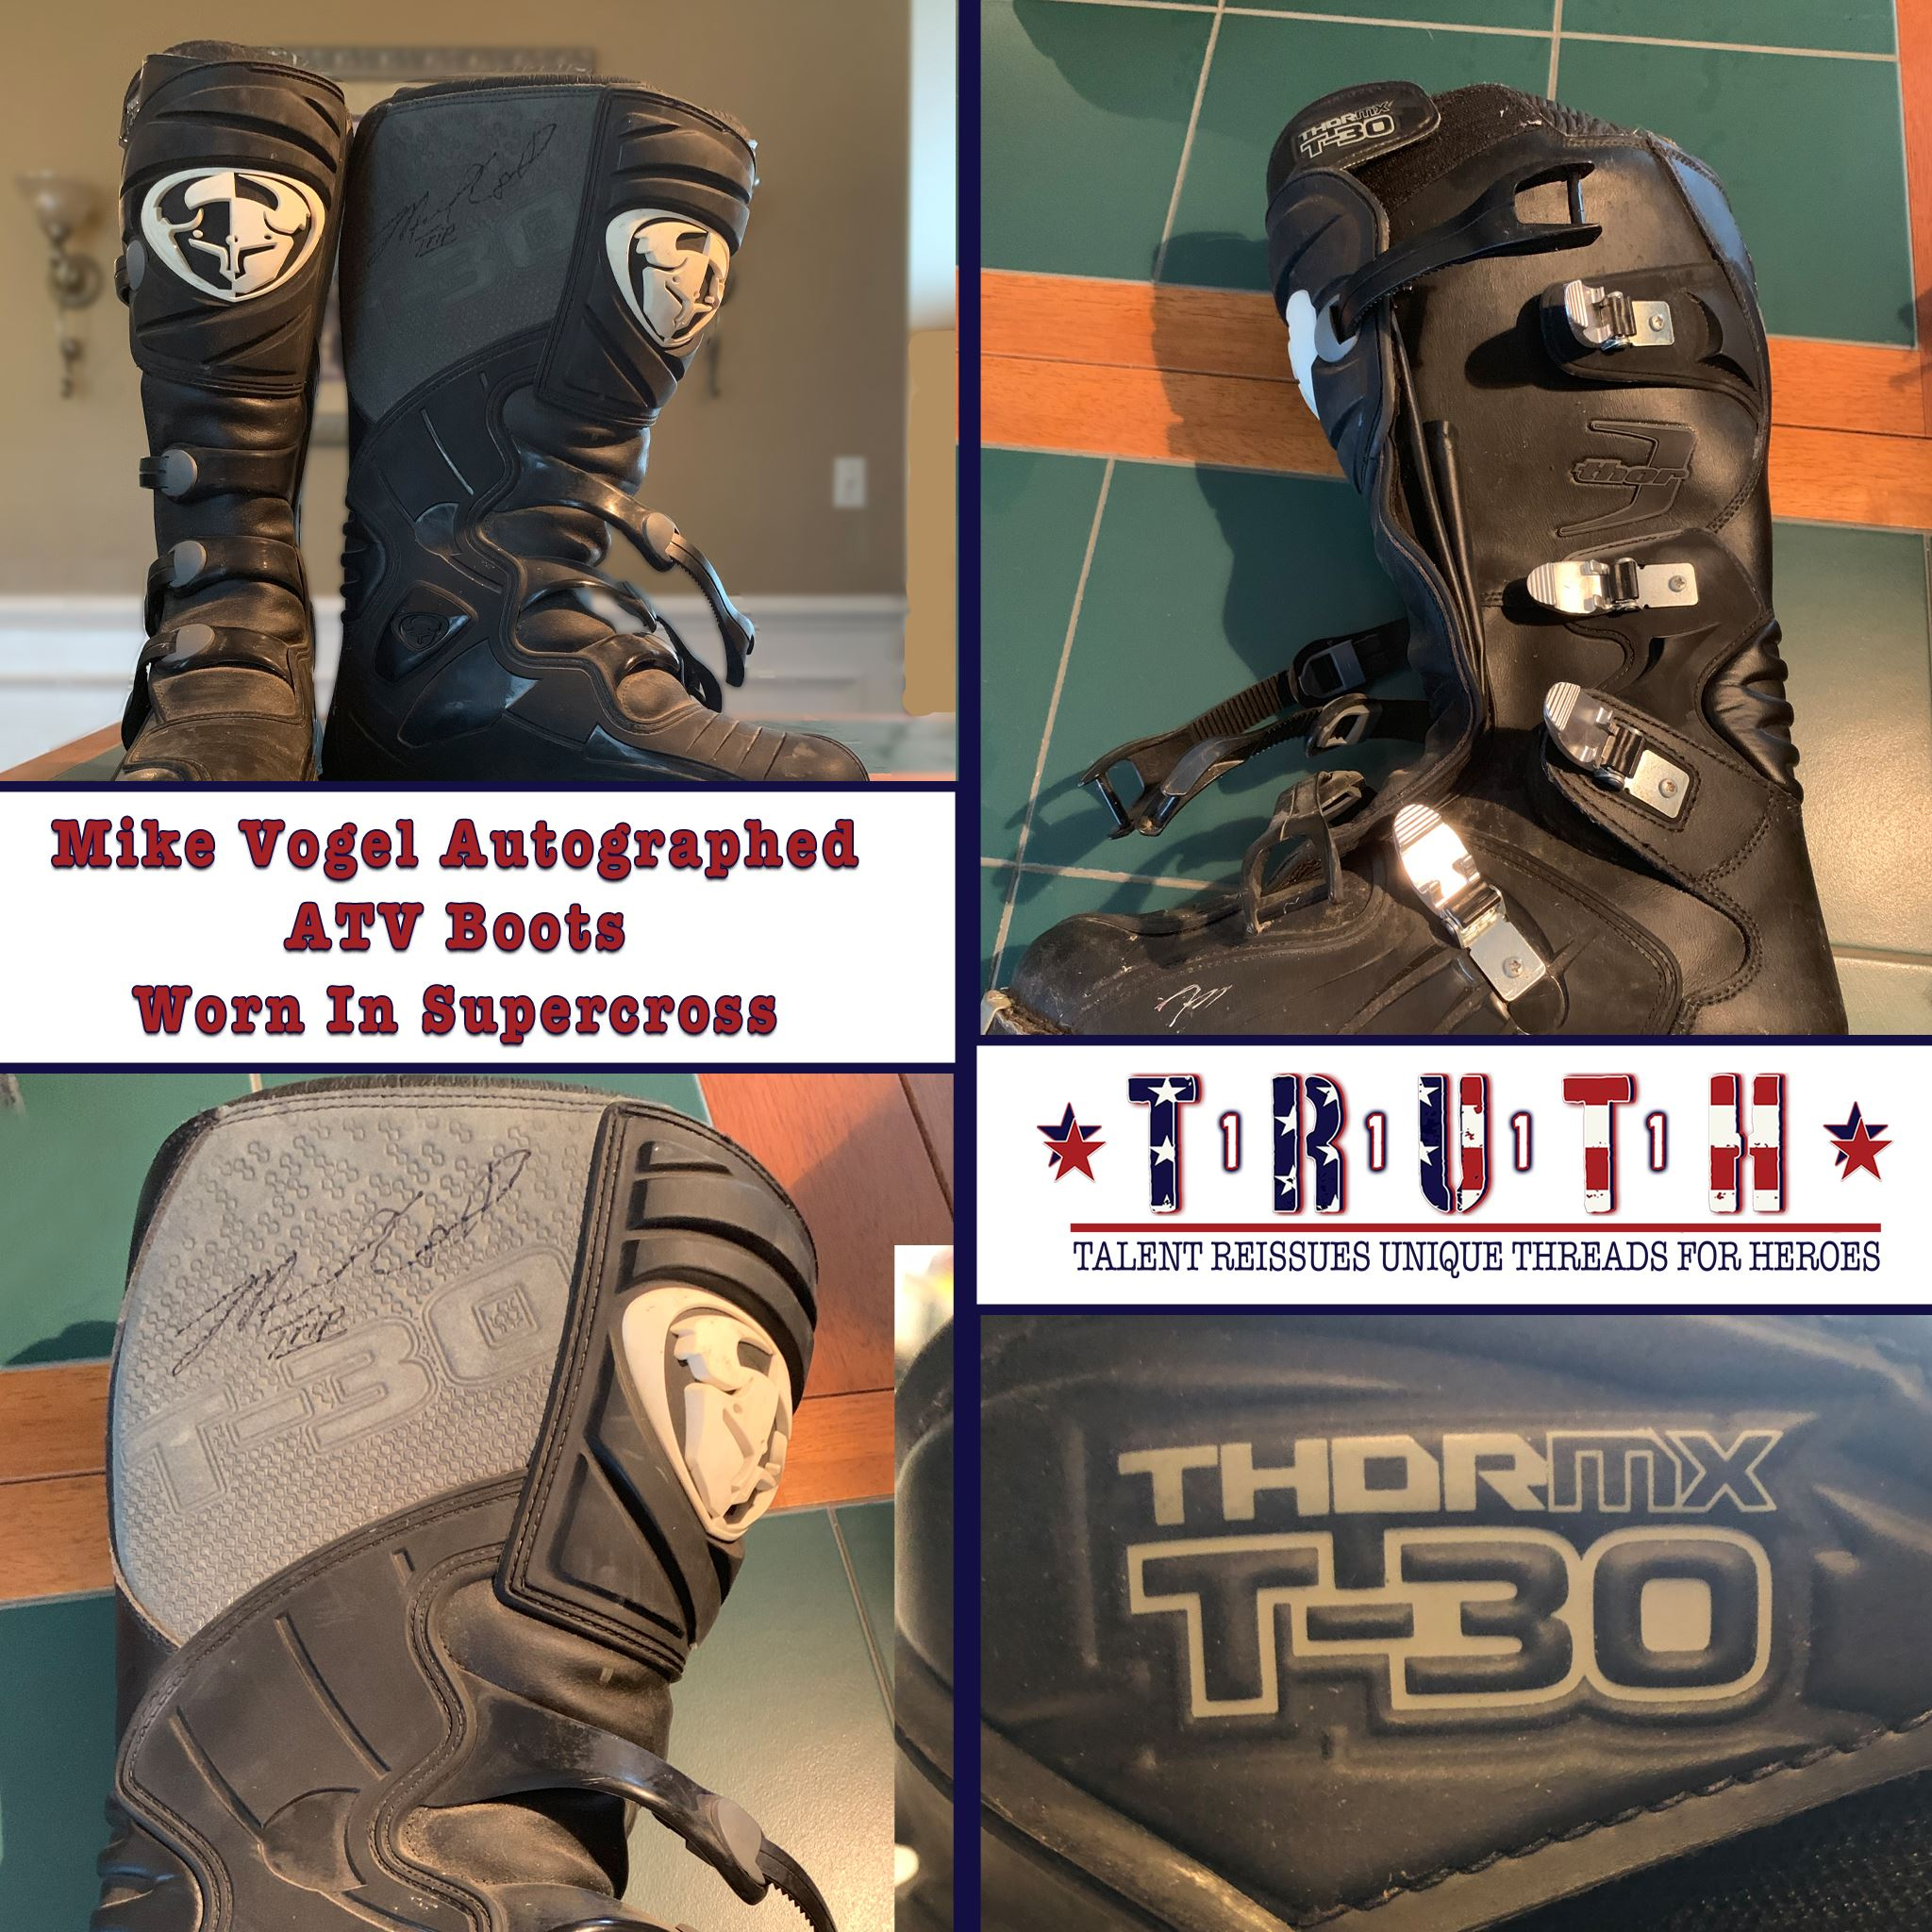 Thor MX T-30 ATV Boots Worn And Autographed By Mike Vogel